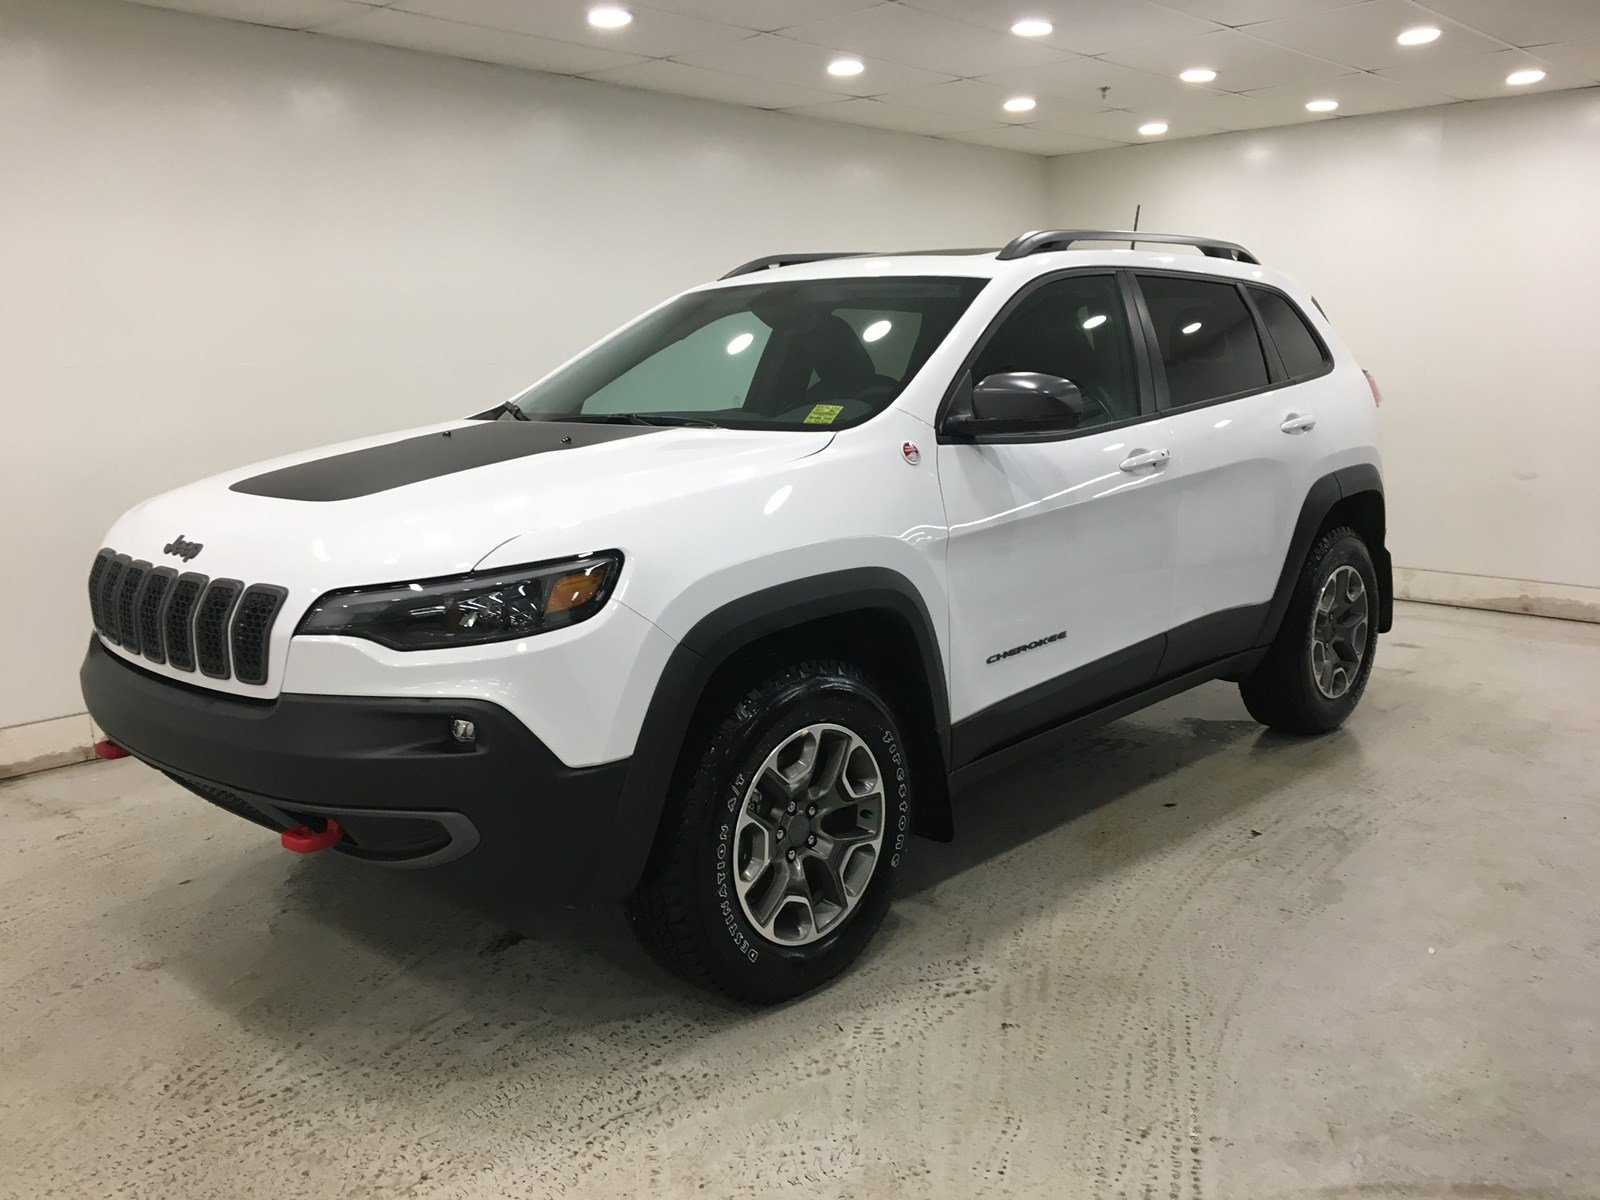 2020 Jeep Cherokee Trailhawk Elite Near Me